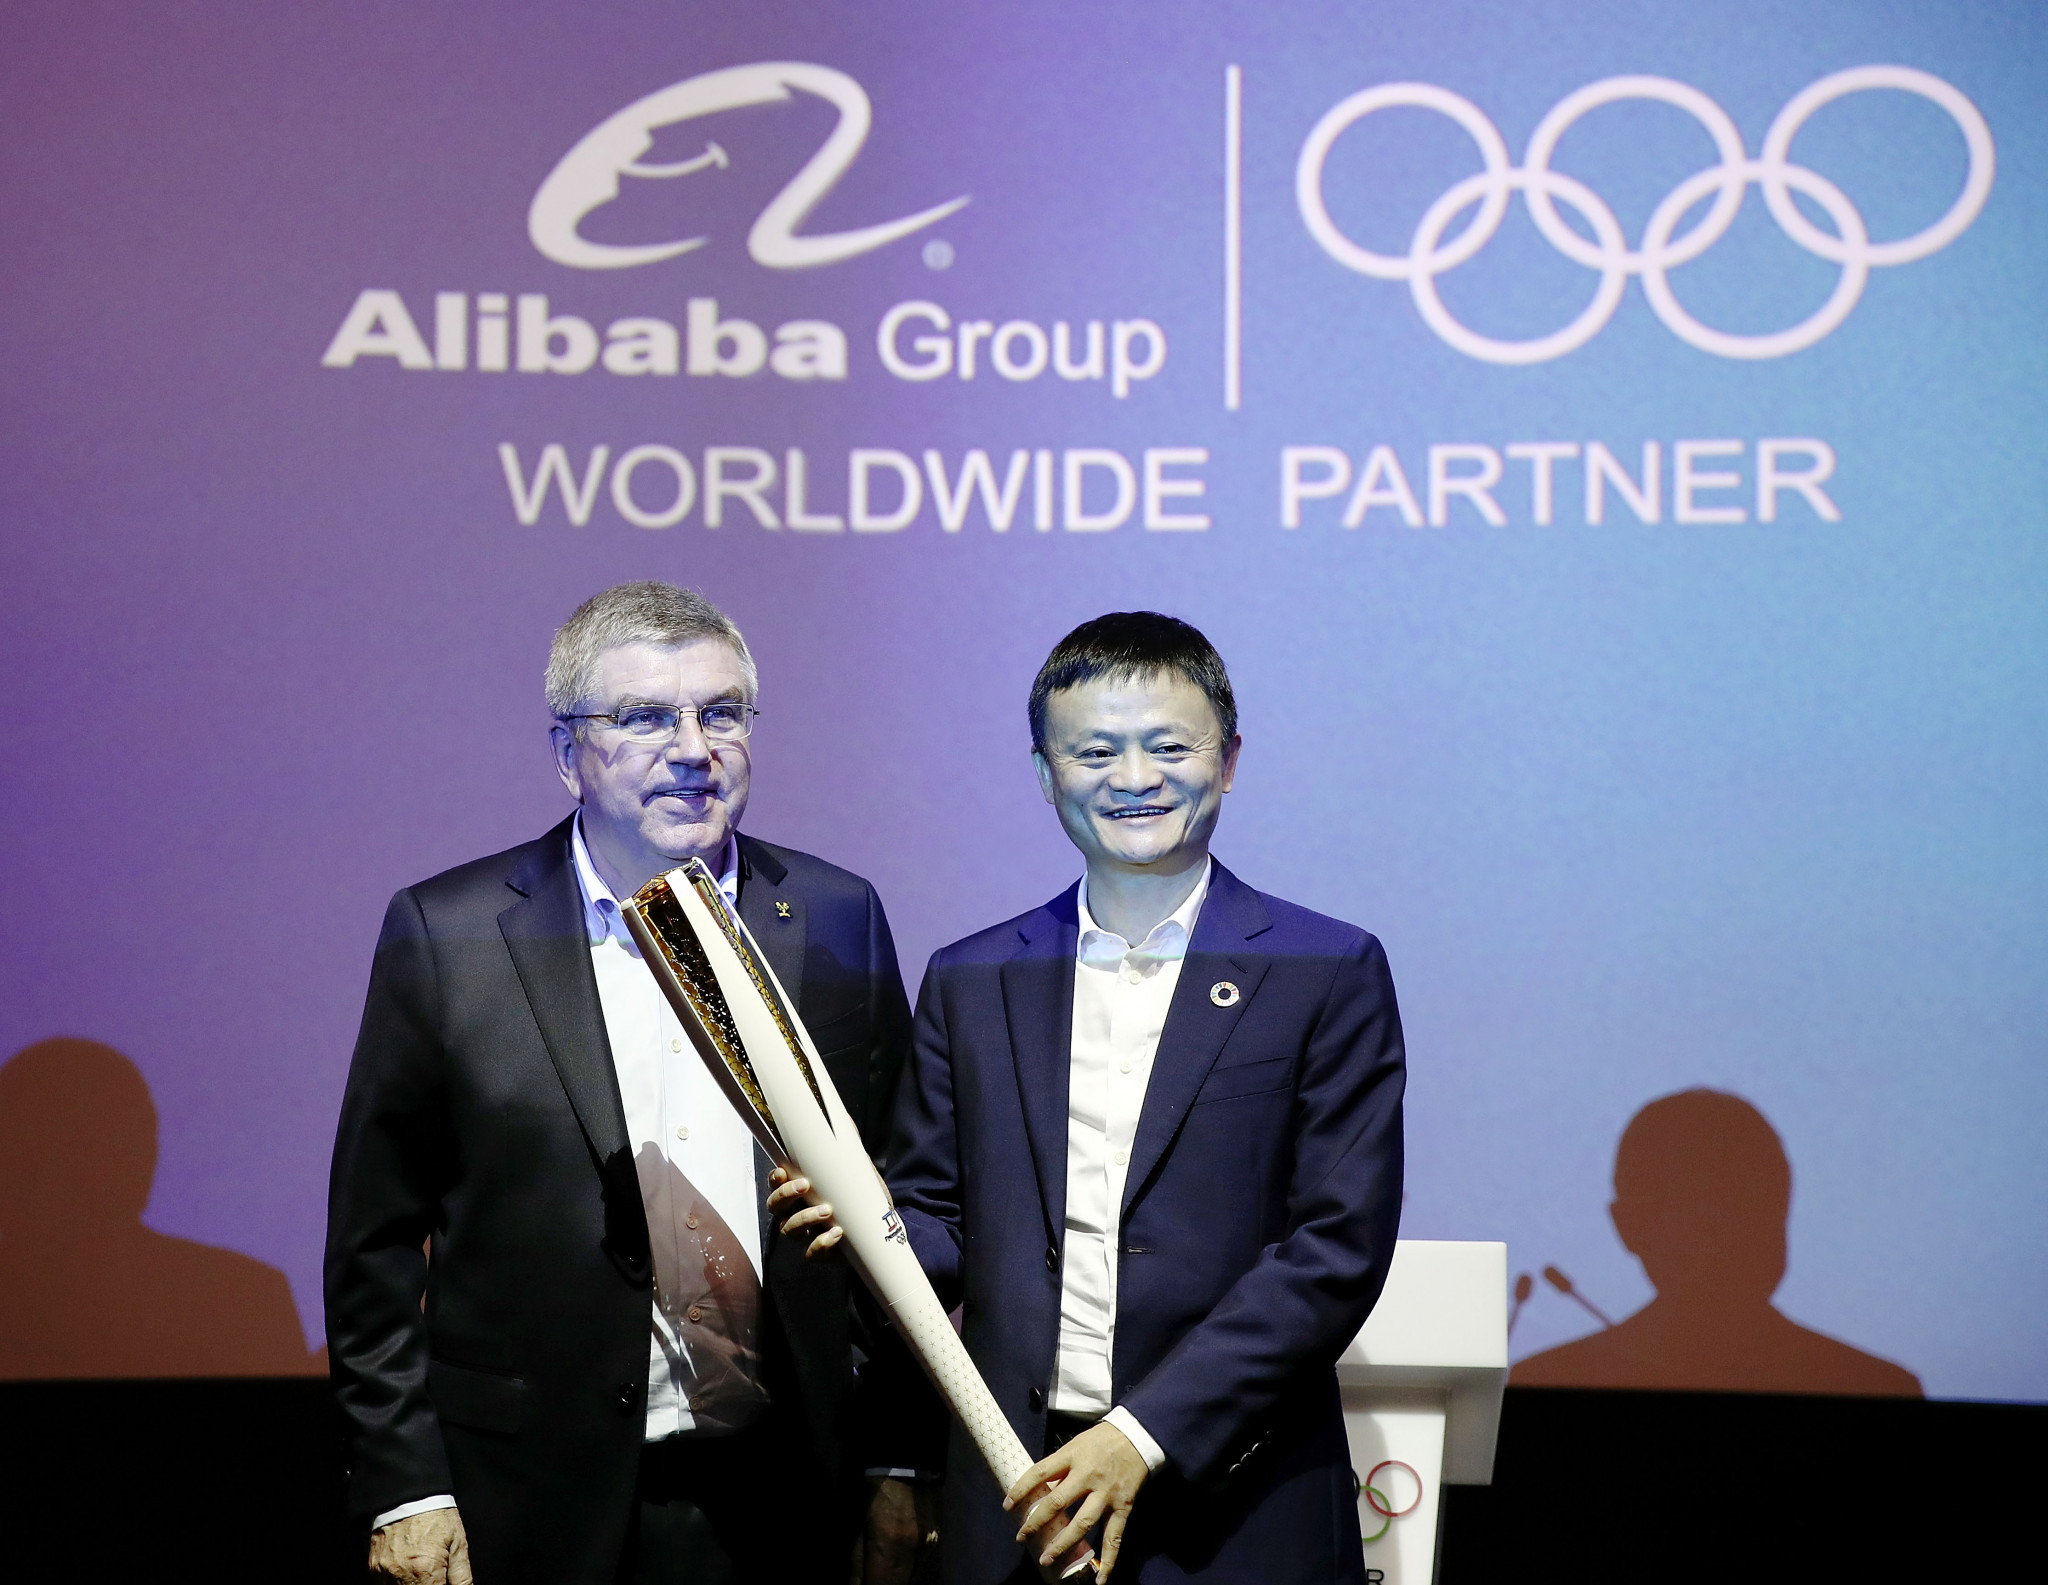 Alibaba Group joined The Olympic Partner worldwide sponsorship programme in 2017, with the deal running until 2028 ©Getty Images